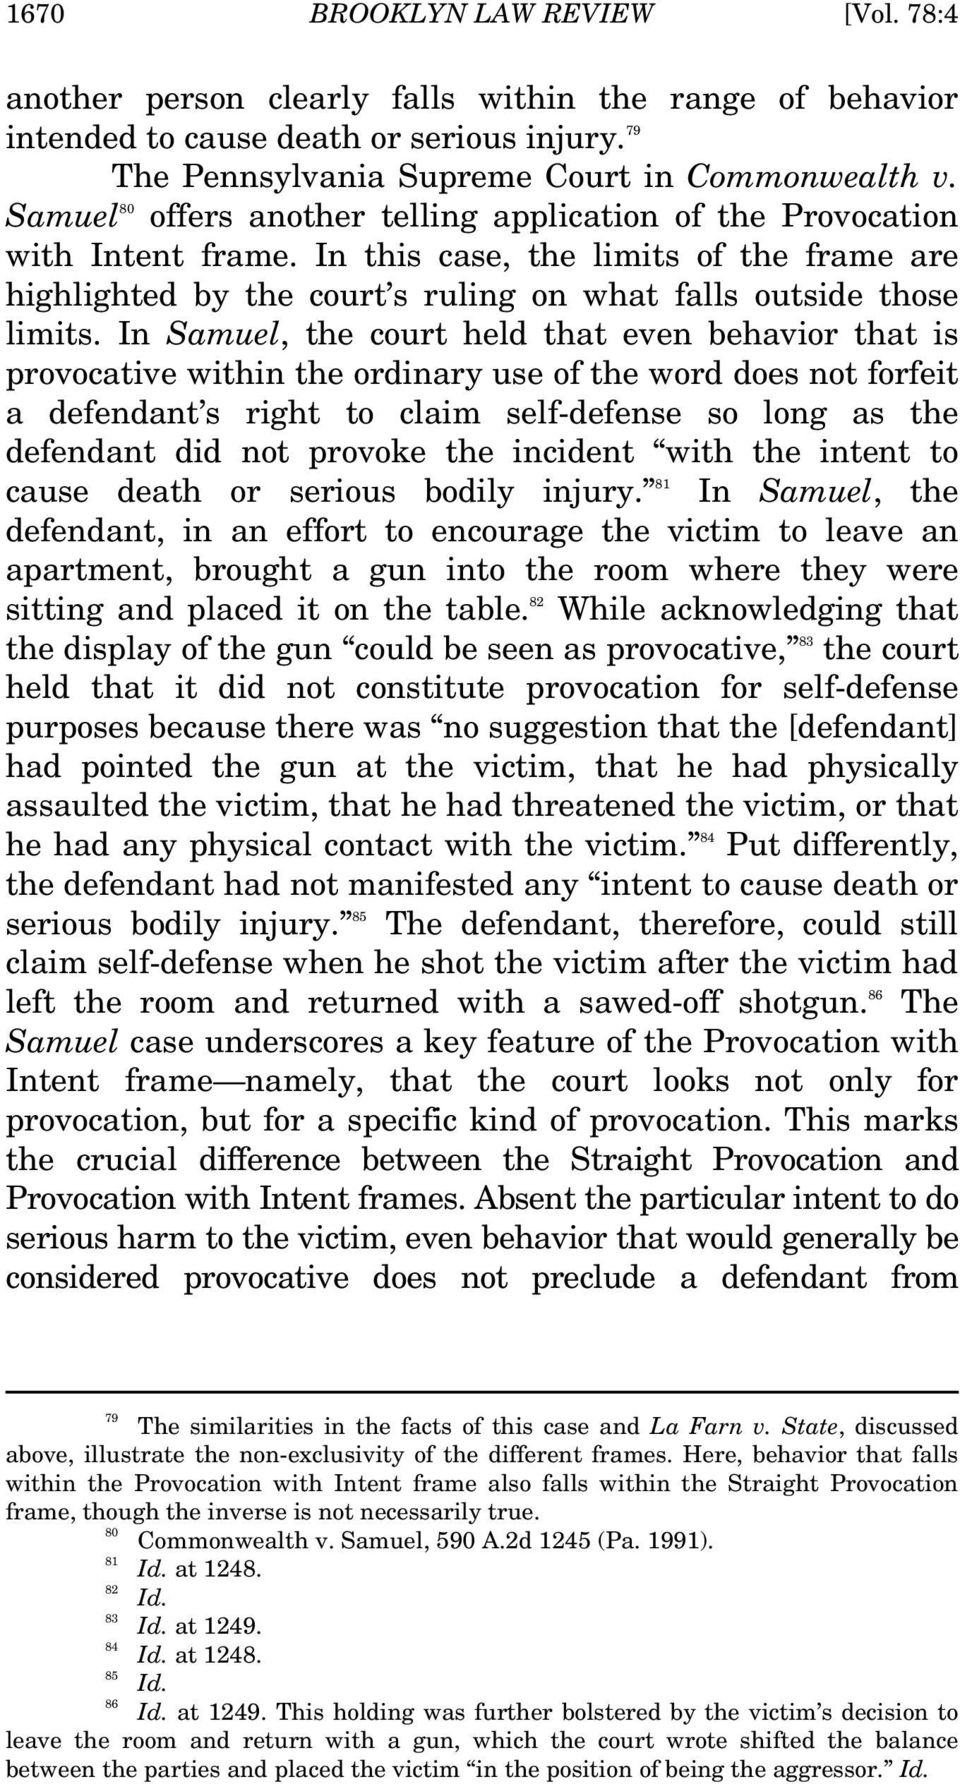 In Samuel, the court held that even behavior that is provocative within the ordinary use of the word does not forfeit a defendant s right to claim self-defense so long as the defendant did not